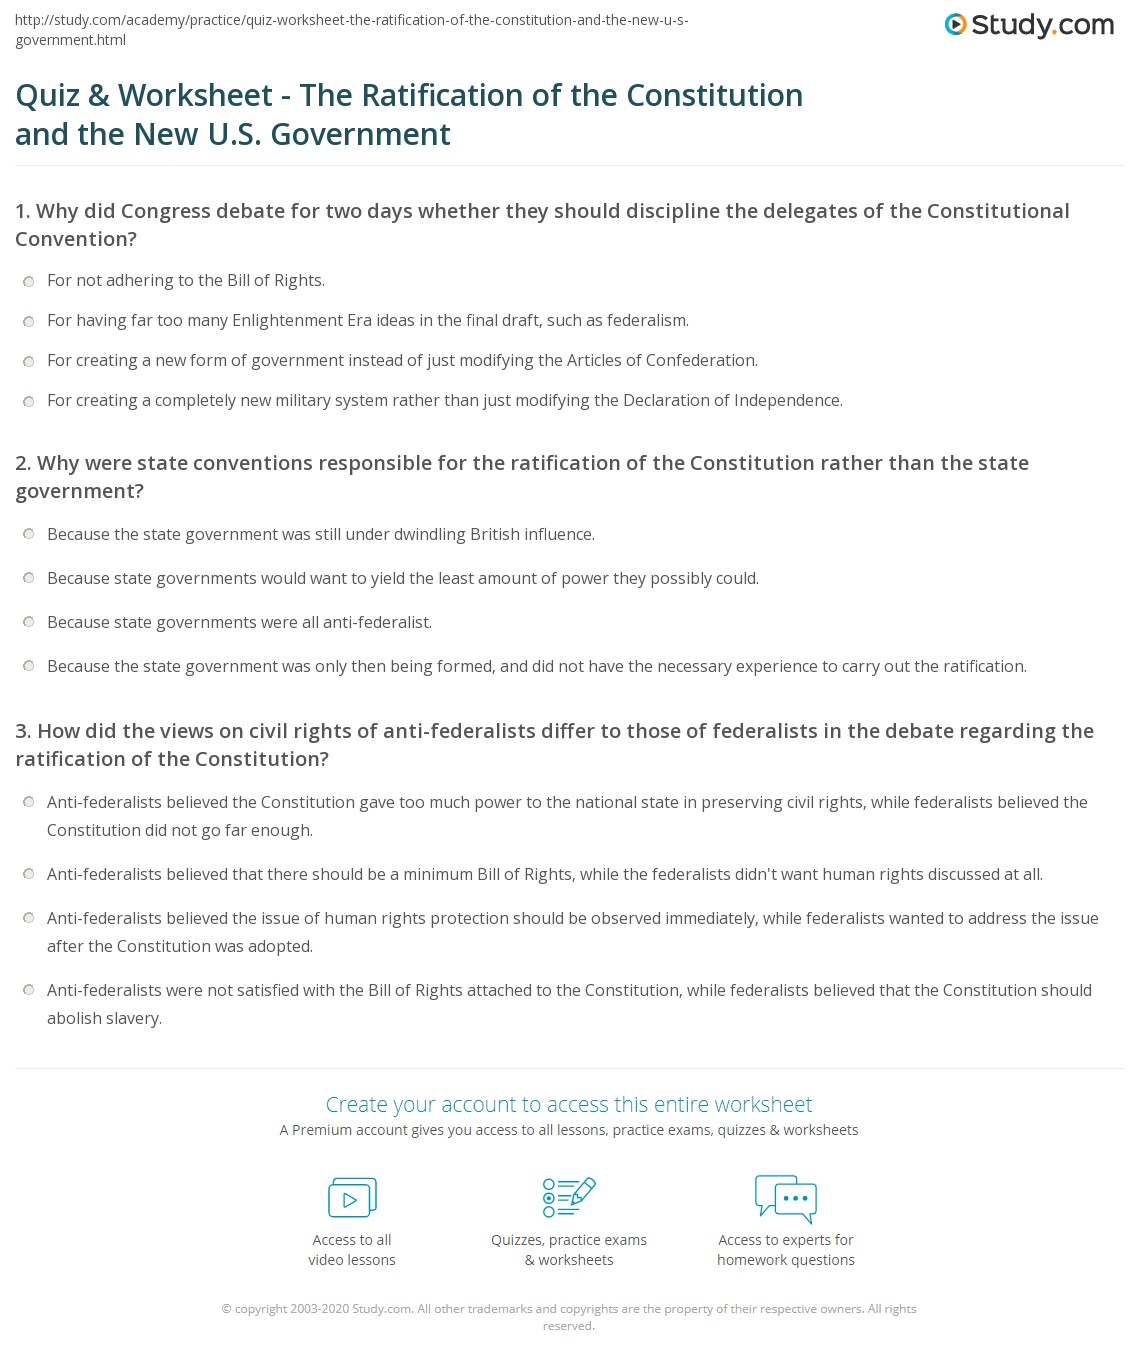 Worksheets Ratifying The Constitution Worksheet quiz worksheet the ratification of constitution and print new u s government worksheet